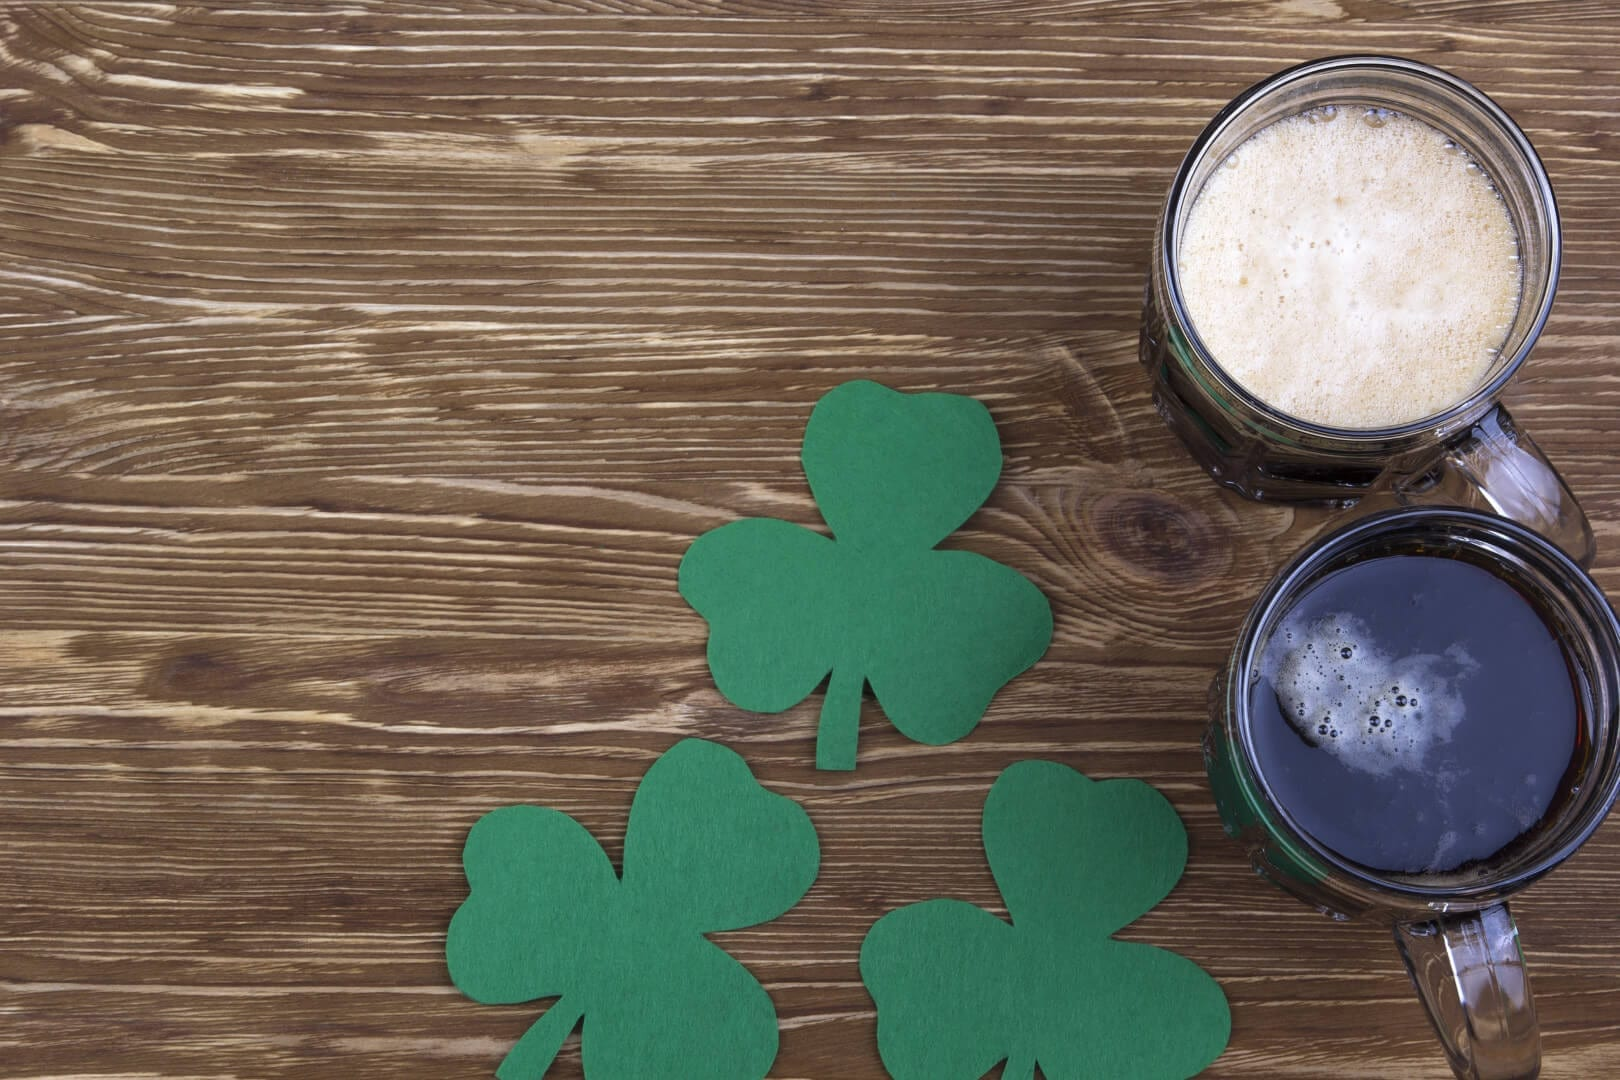 jersey-brewed stouts for st. patrick's day